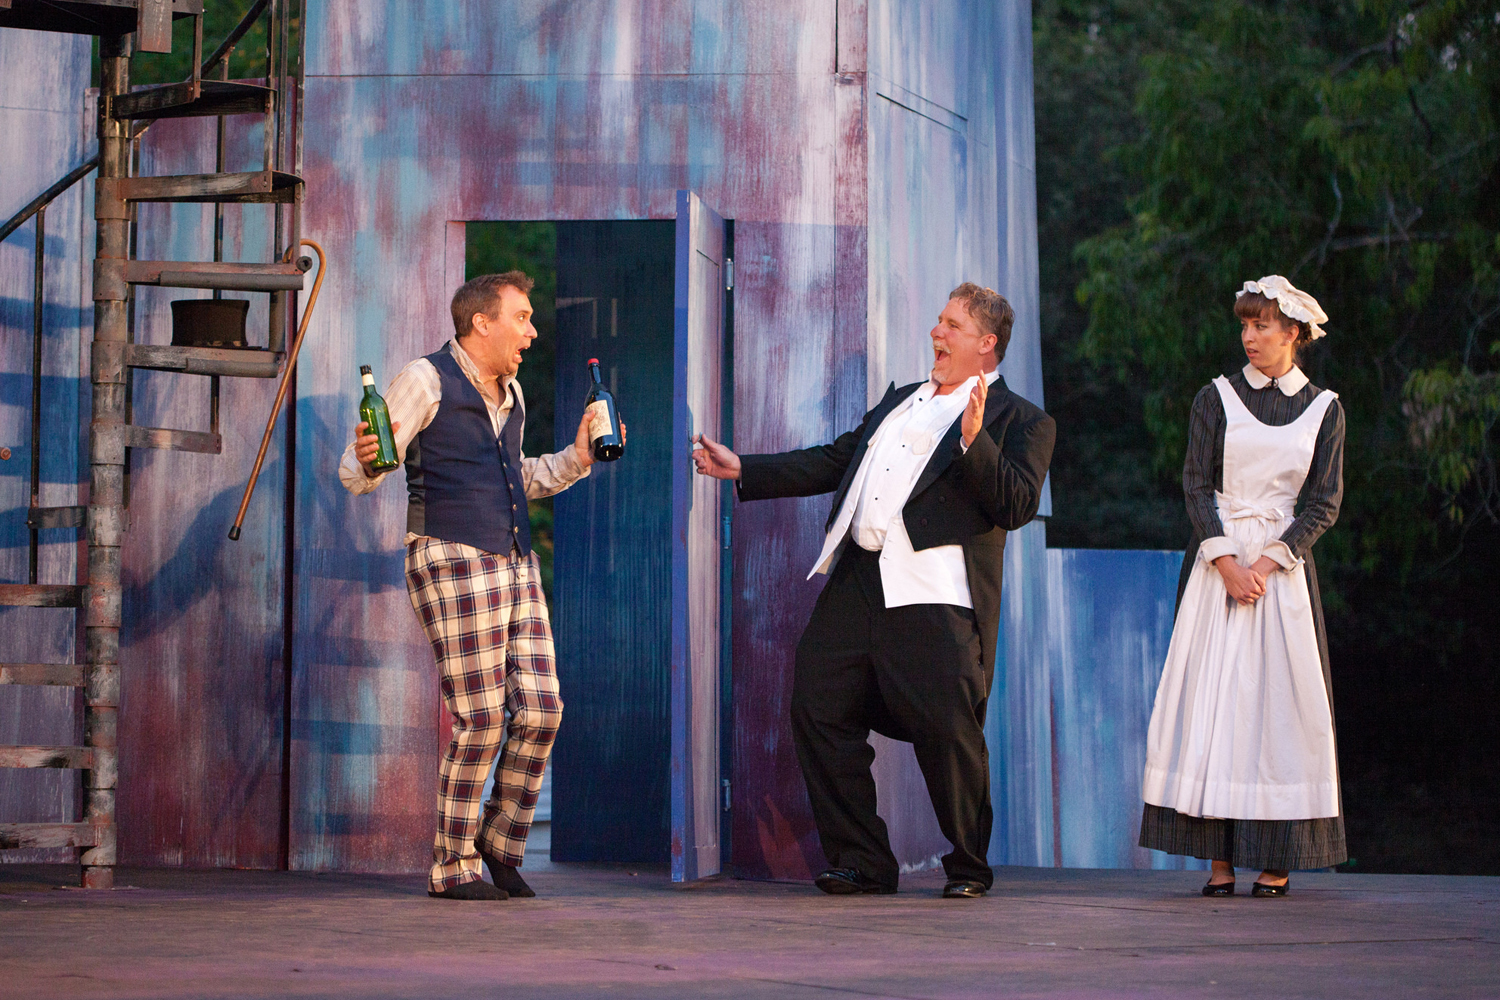 David Melville, Danny Campbell and Julia Aks in Twelfth Night, 2014. Photo: Grettel Cortes.